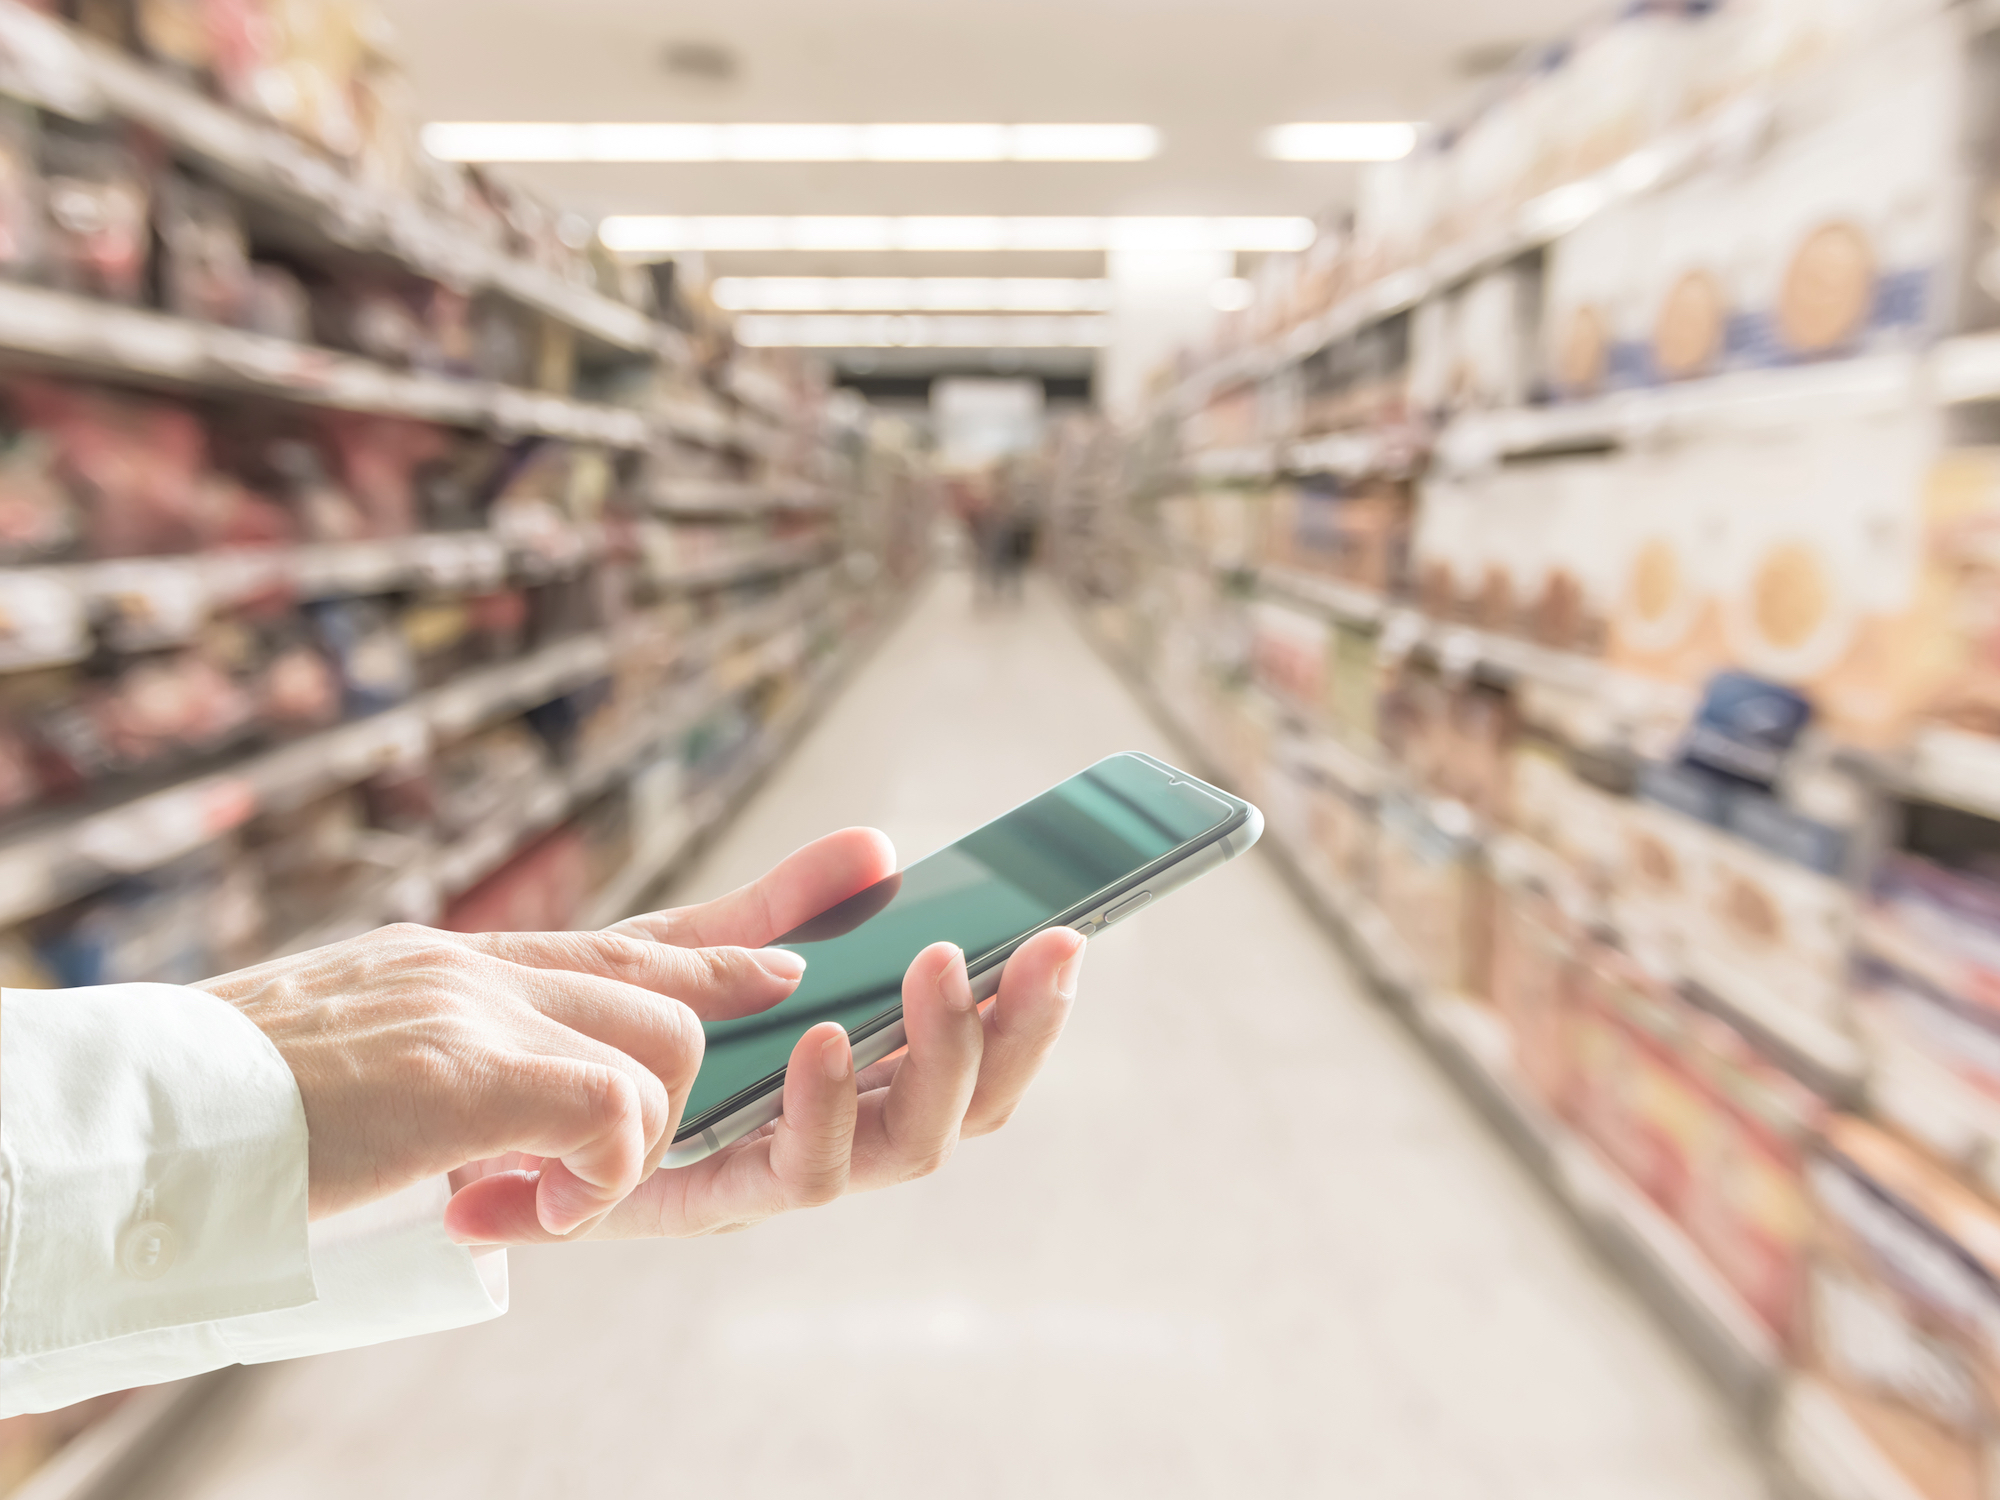 Five trends we've spotted in retail and the omnichannel experience